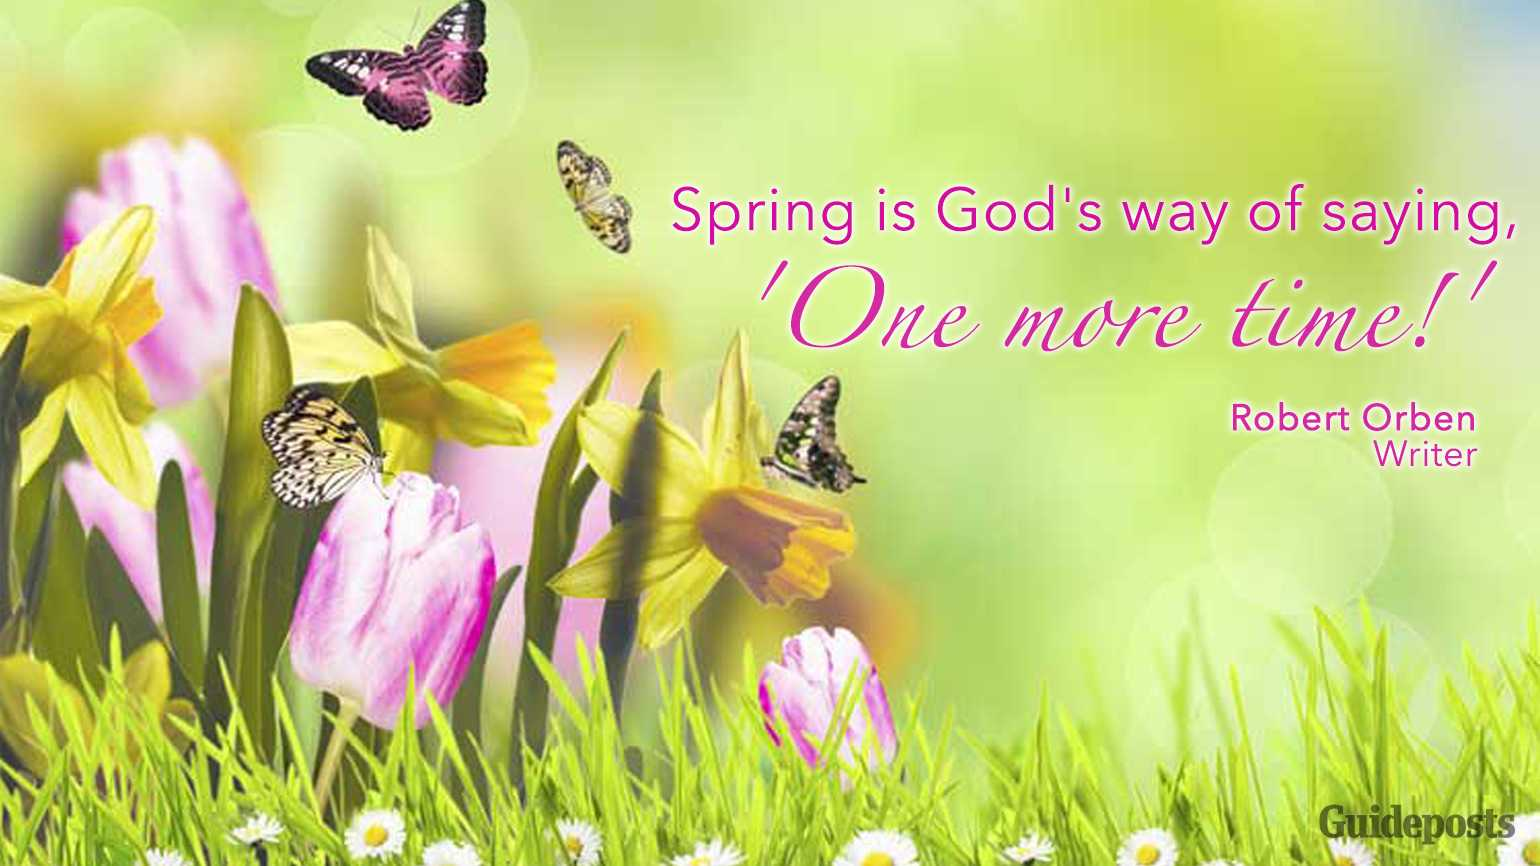 Inspiring Quotes For Spring Guideposts